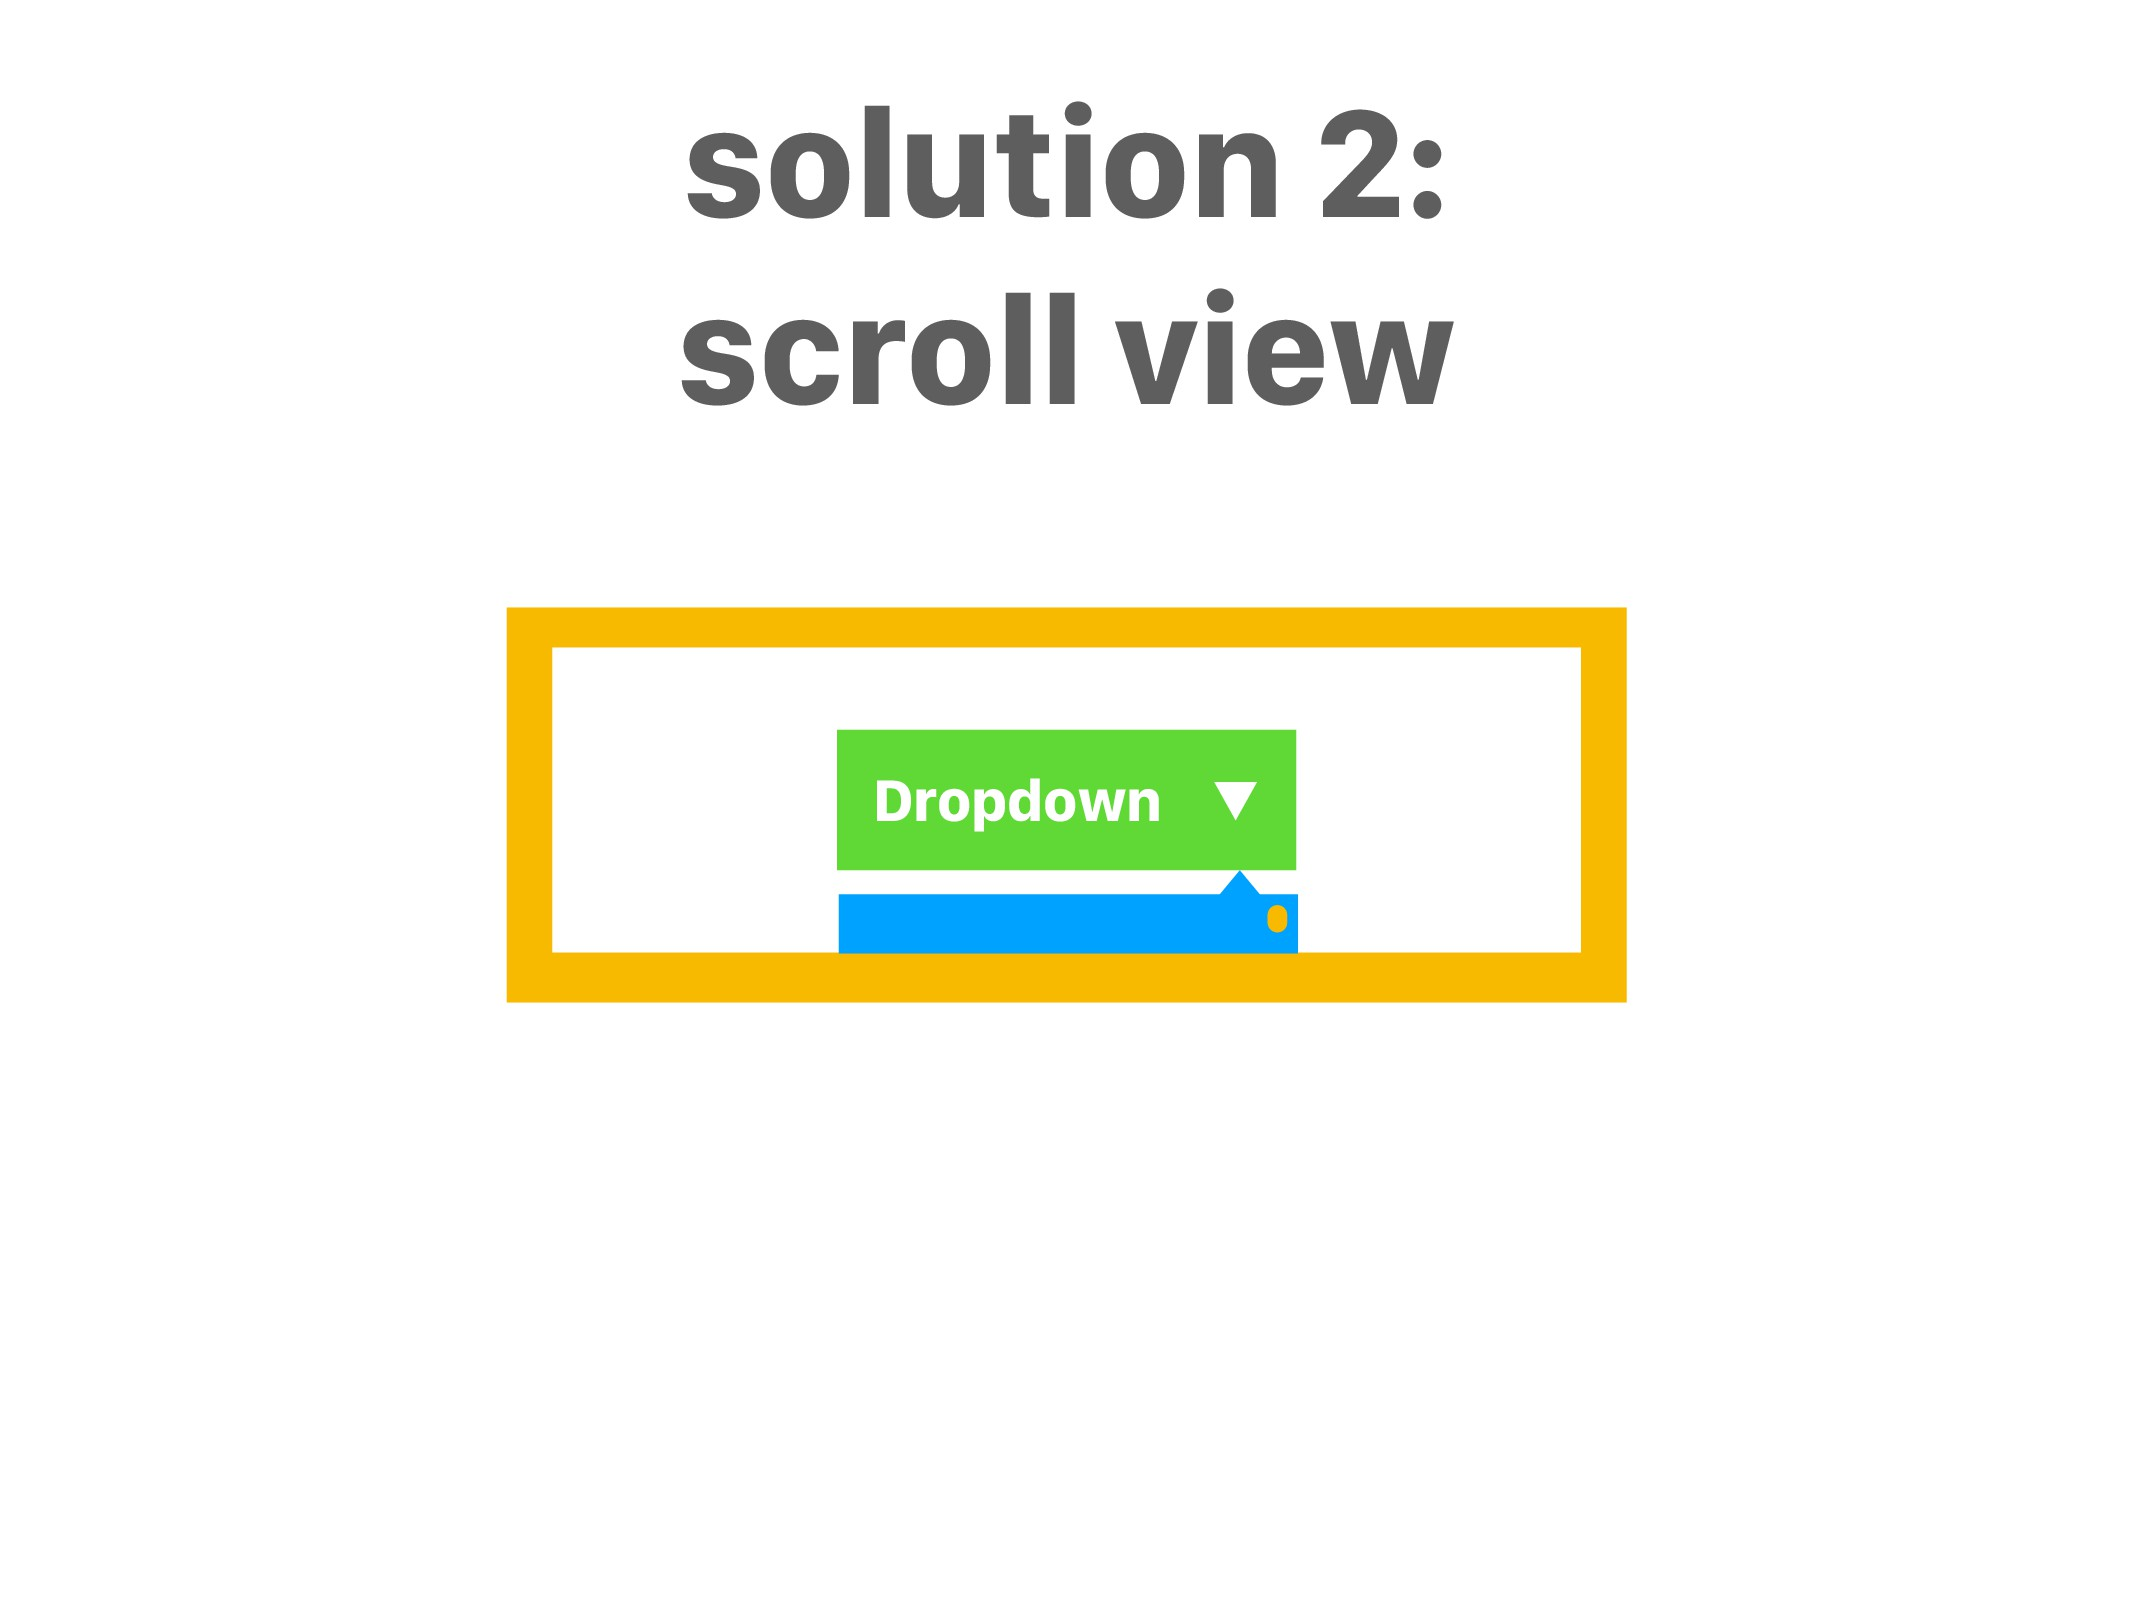 Dropdown ▼ solution 2: scroll view